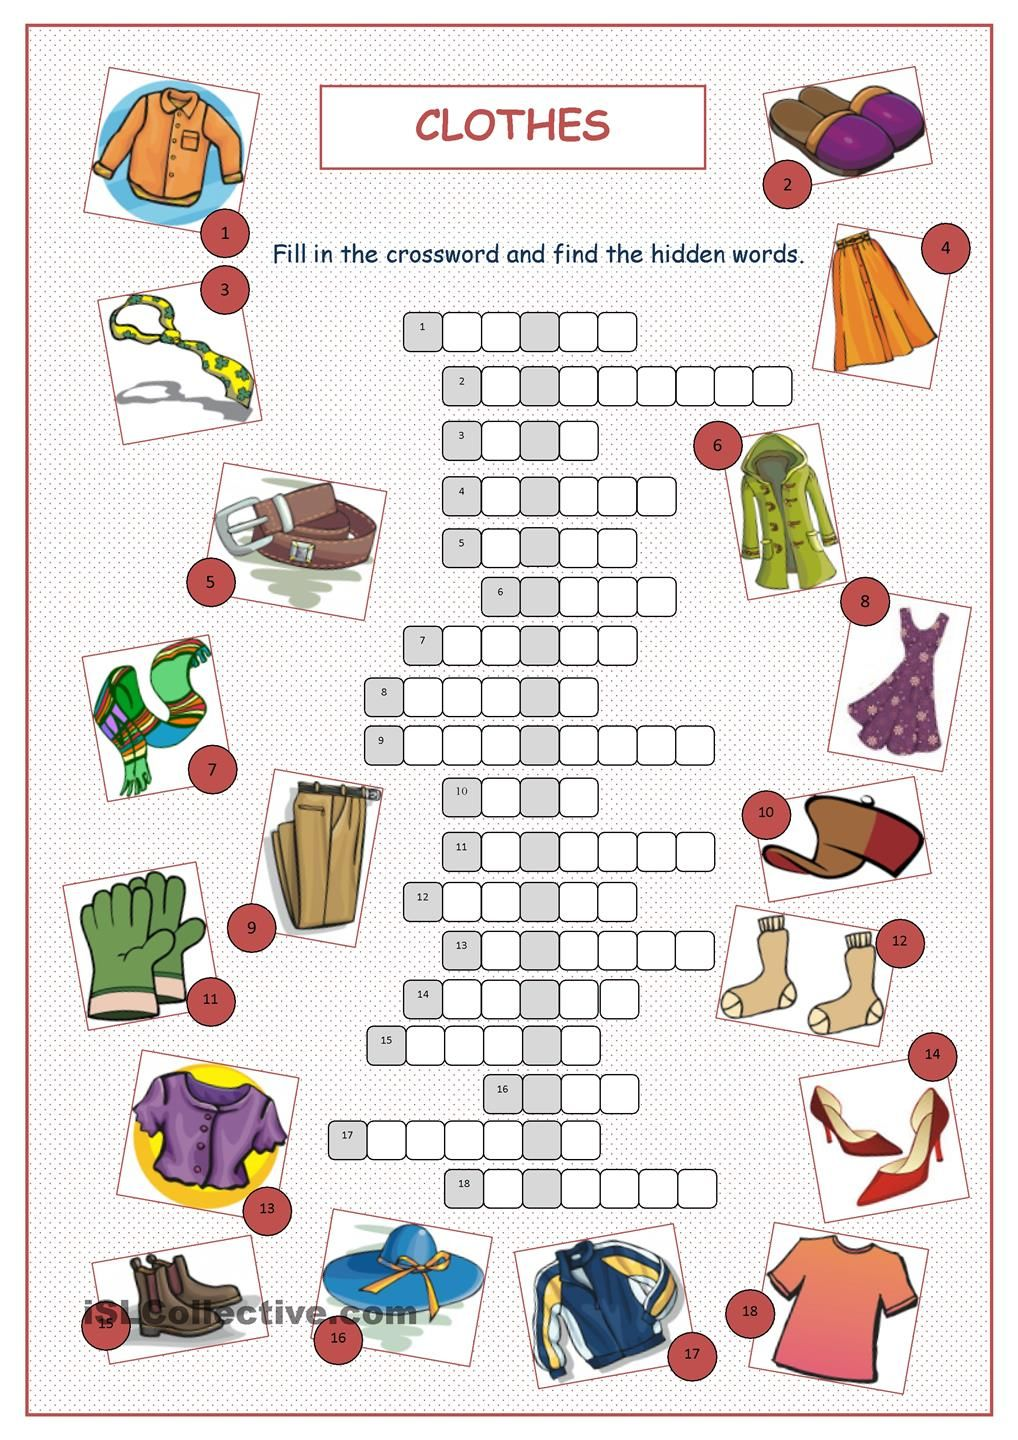 Clothes and Accessories - crossword | CLOTHES | Pinterest ...